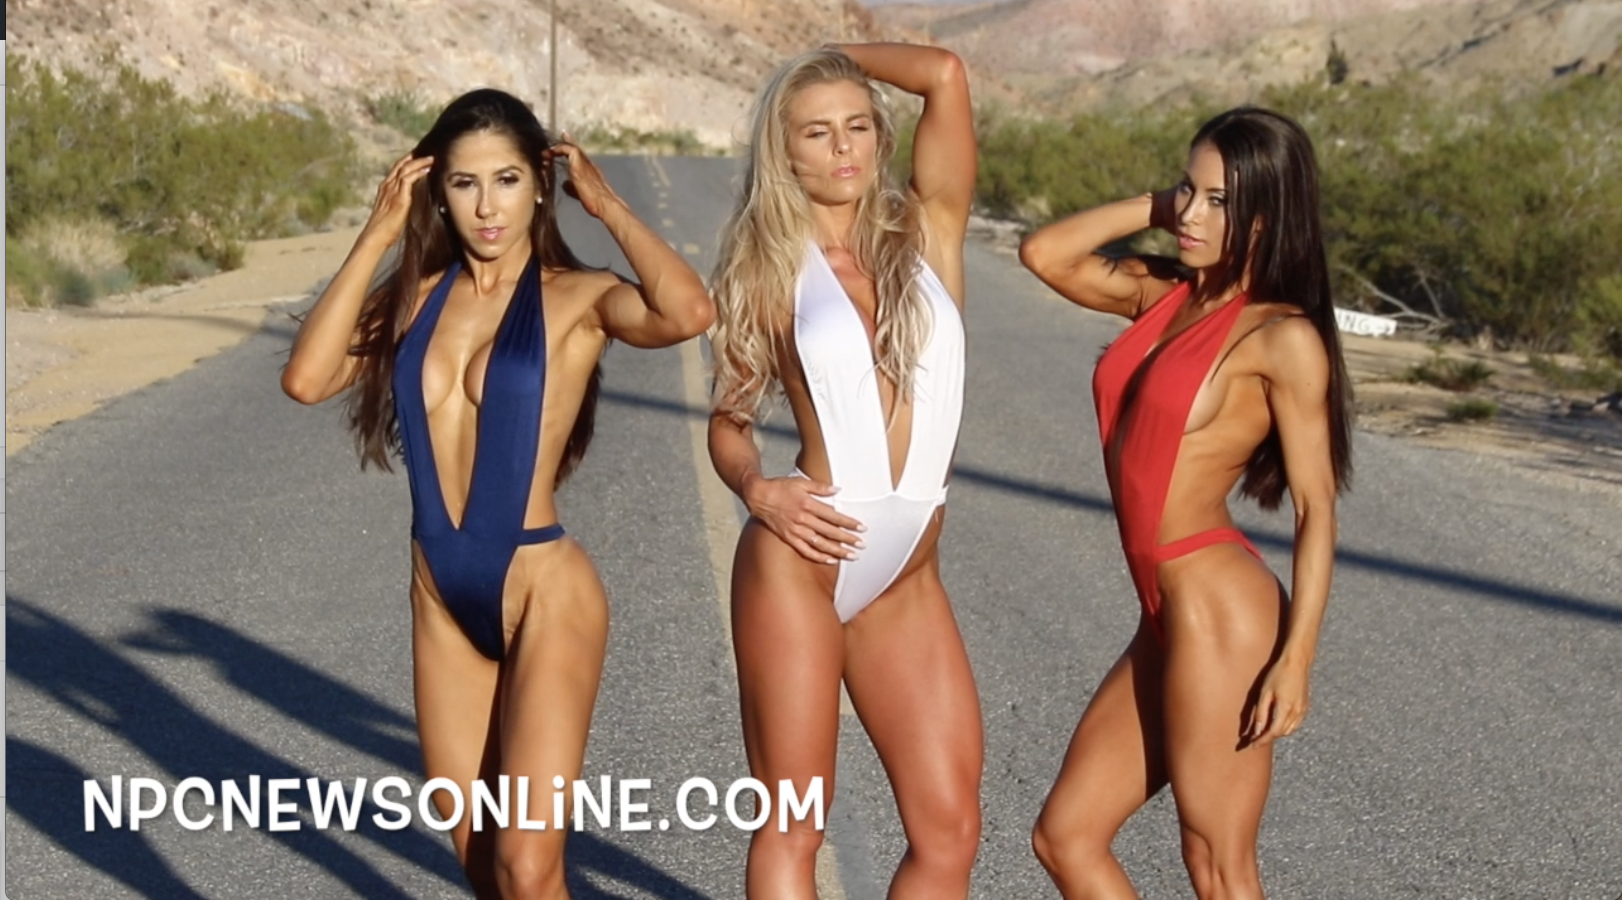 2017 J.M. Manion Nelson Ghost Town Video With IFBB Bikini Pro's Sheena Jayne Martin,  Romina Basualdo & Olympia Champion  Angelica Teixeira.